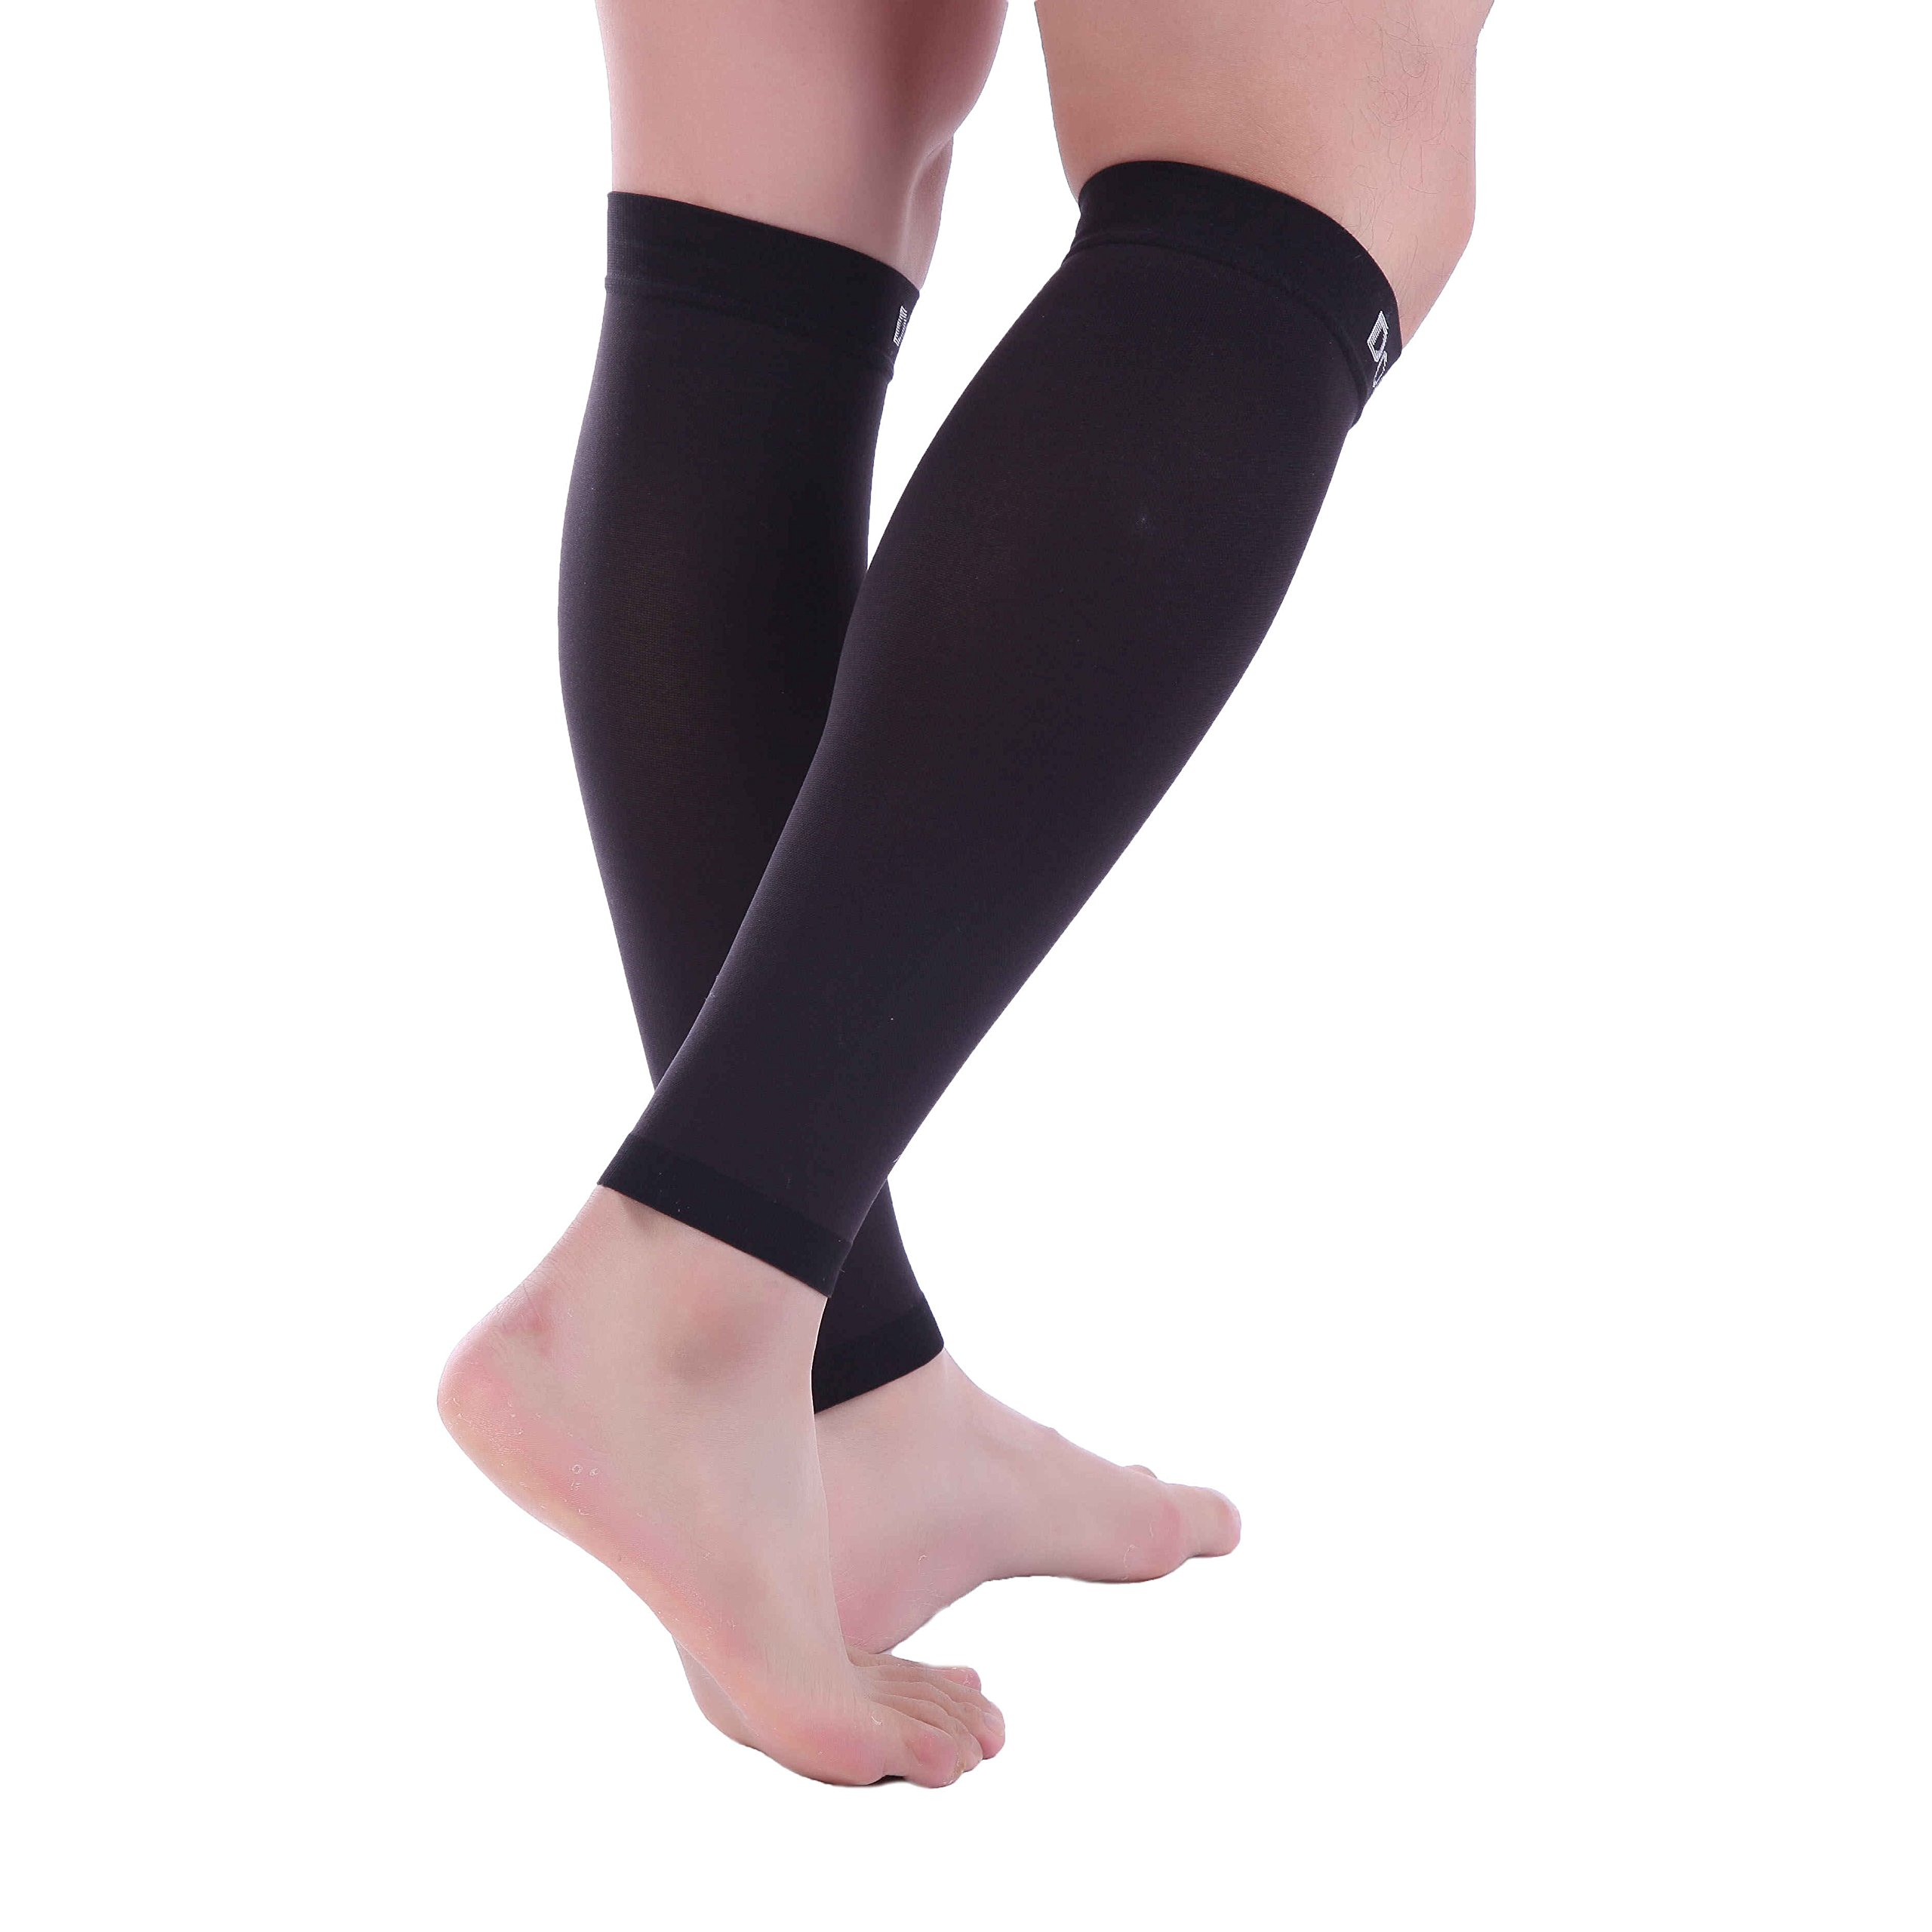 Doc Miller Premium Calf Compression Sleeve 1 Pair 20-30mmHg Strong Calf Support Graduated Pressure for Sports Running Muscle Recovery Shin Splints Varicose Veins (Black, 5X-Large) by Doc Miller (Image #2)